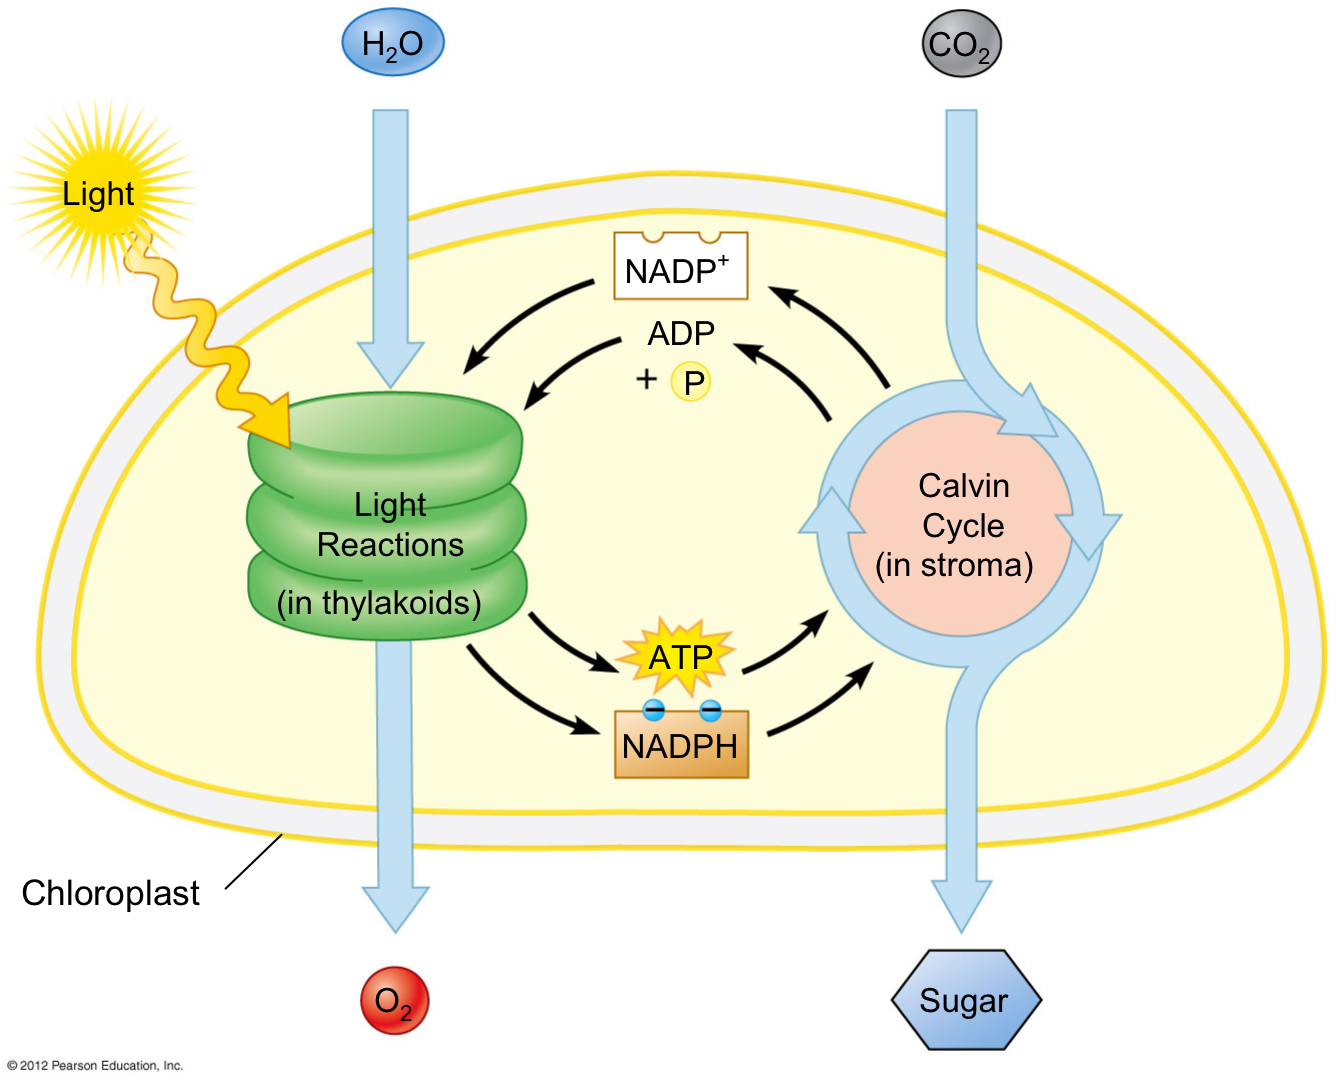 photosynthesis light reactions overview biology ap independent reaction summary cycle molecular calvin molecules dark plant process steps phase chloroplast level